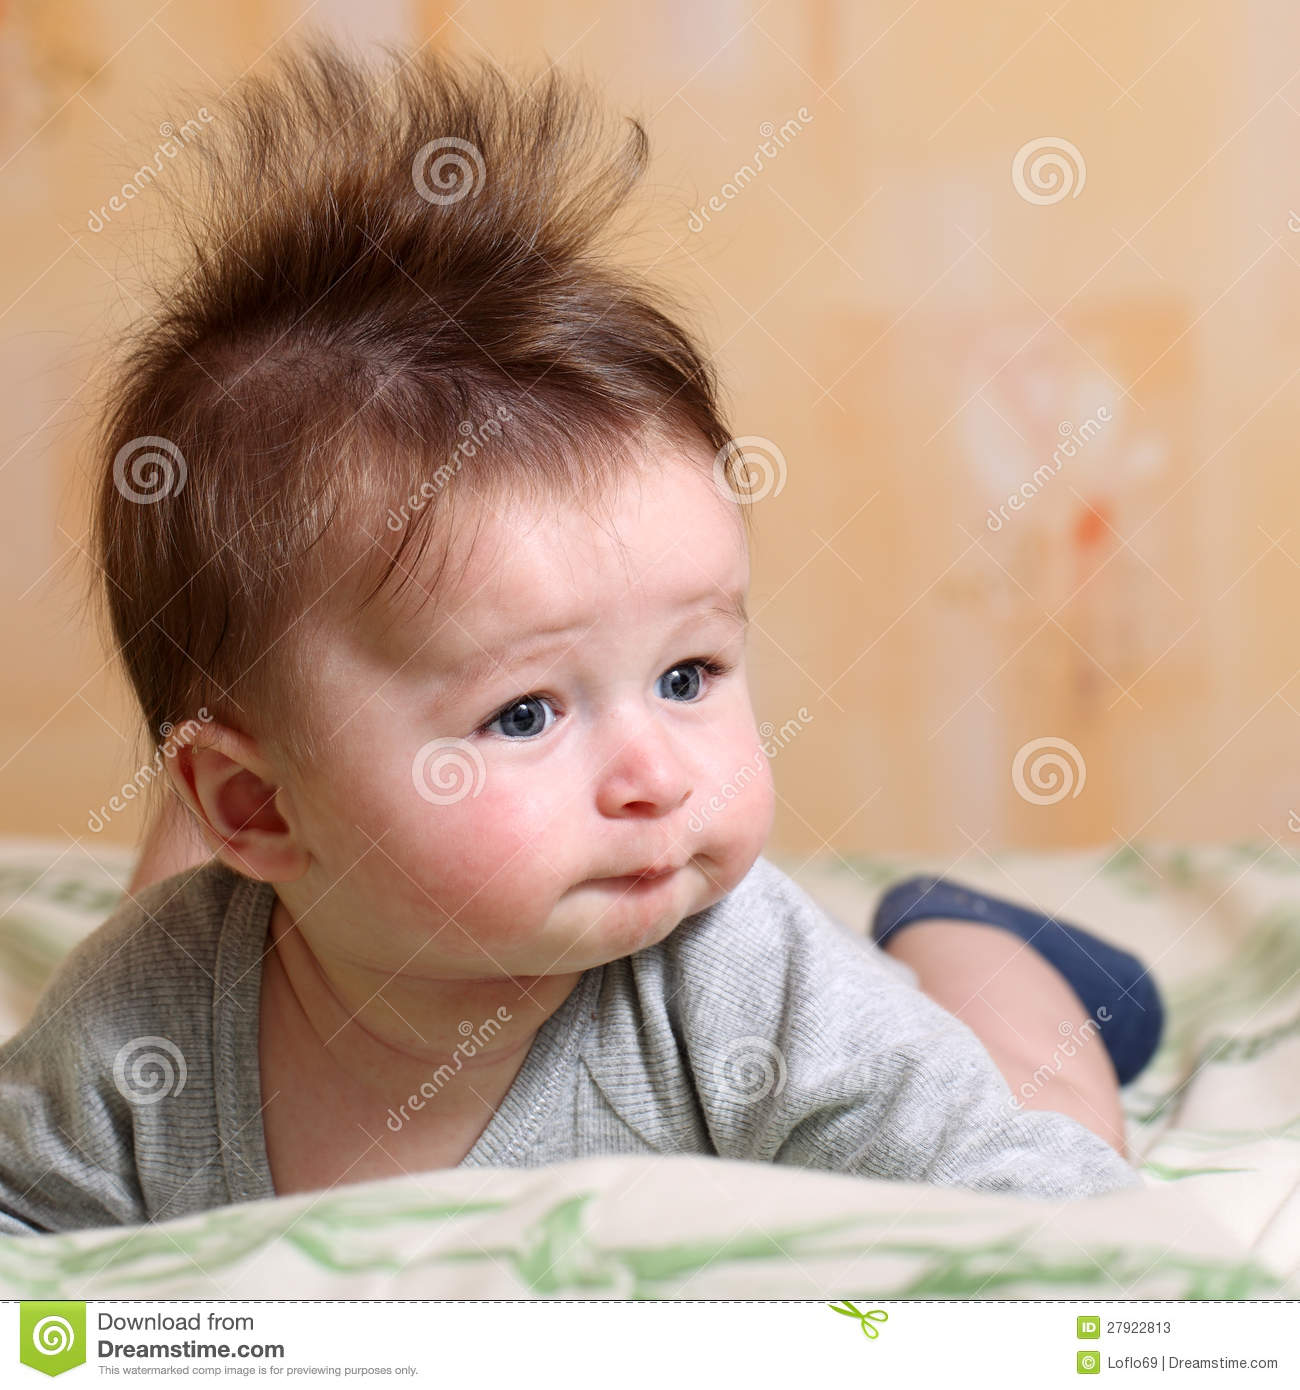 Mohawk Hairstyle For Baby Stock Photos - Image: 27922813